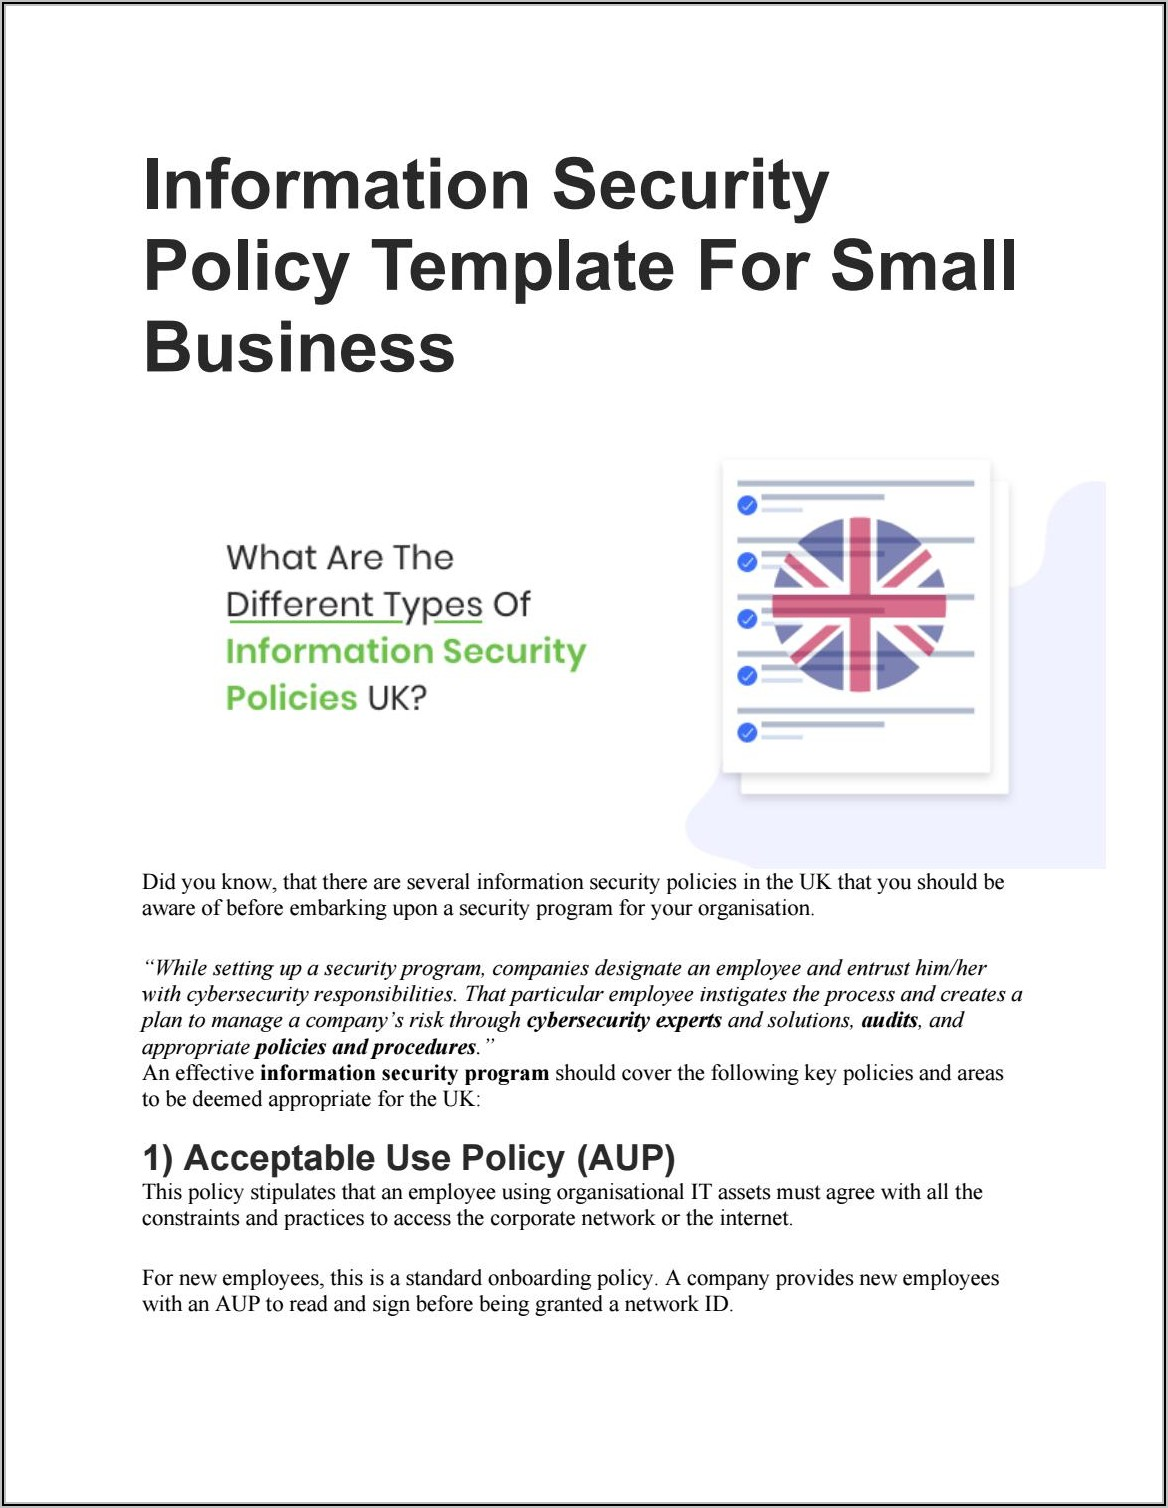 Information Security Policy Template For Small Business